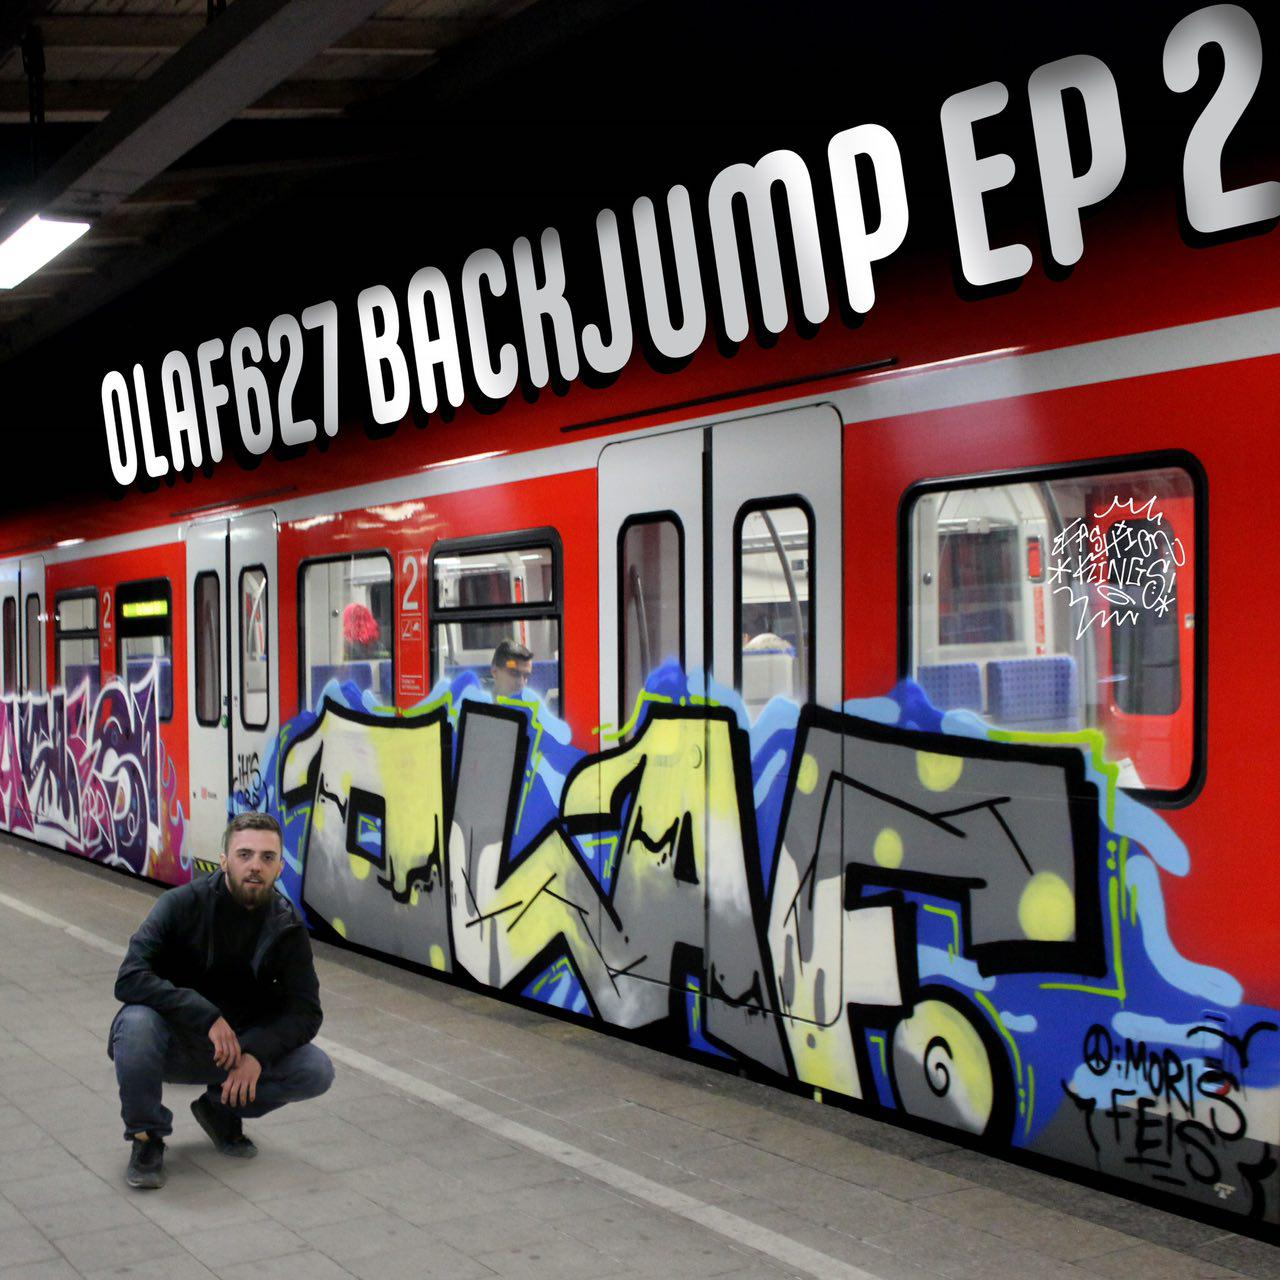 Upcoming: Olaf 627 - Backjump Ep 2